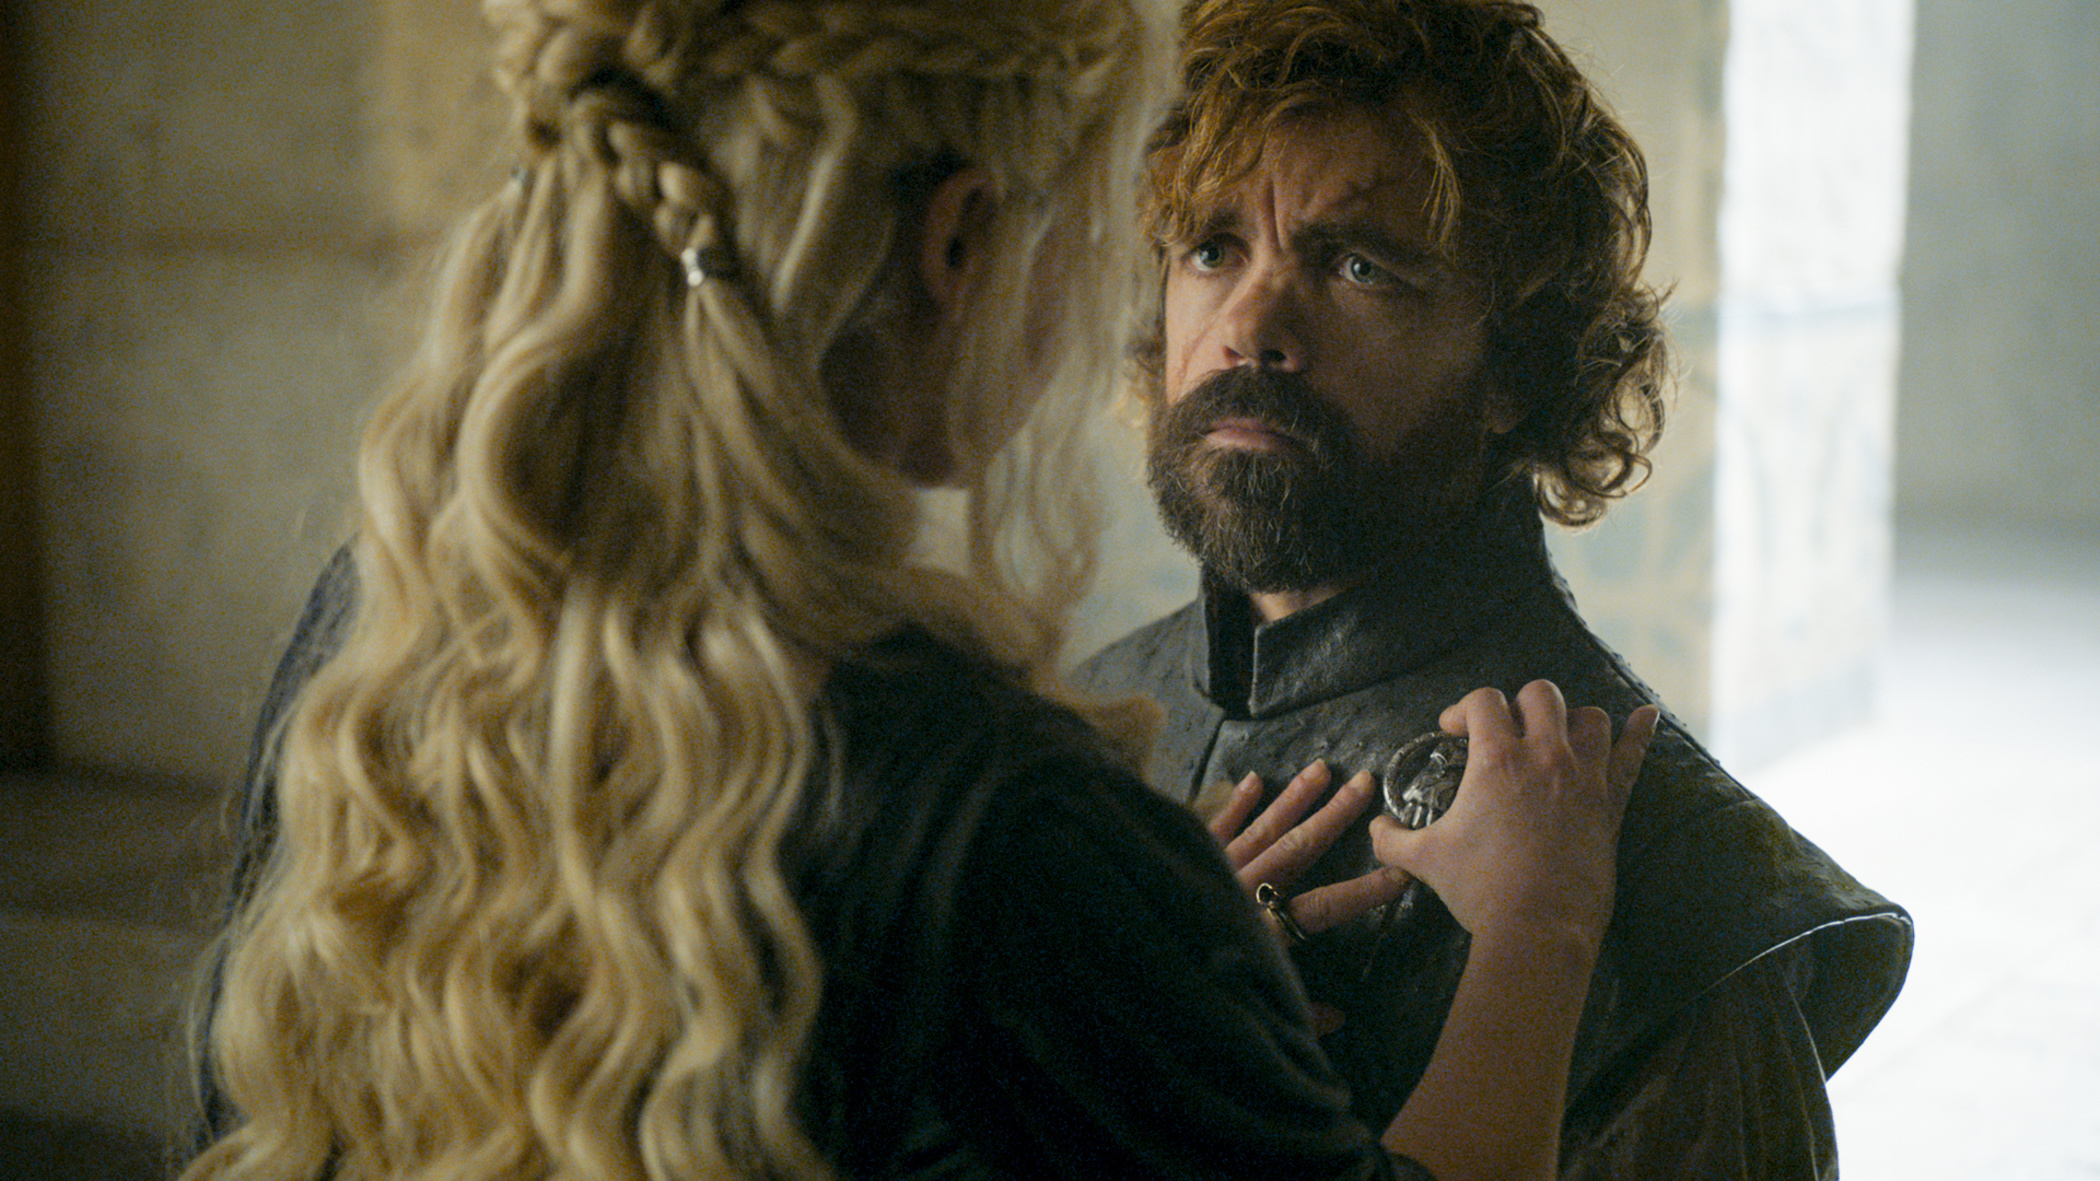 Emilia Clarke and Peter Dinklage on Game of Thrones